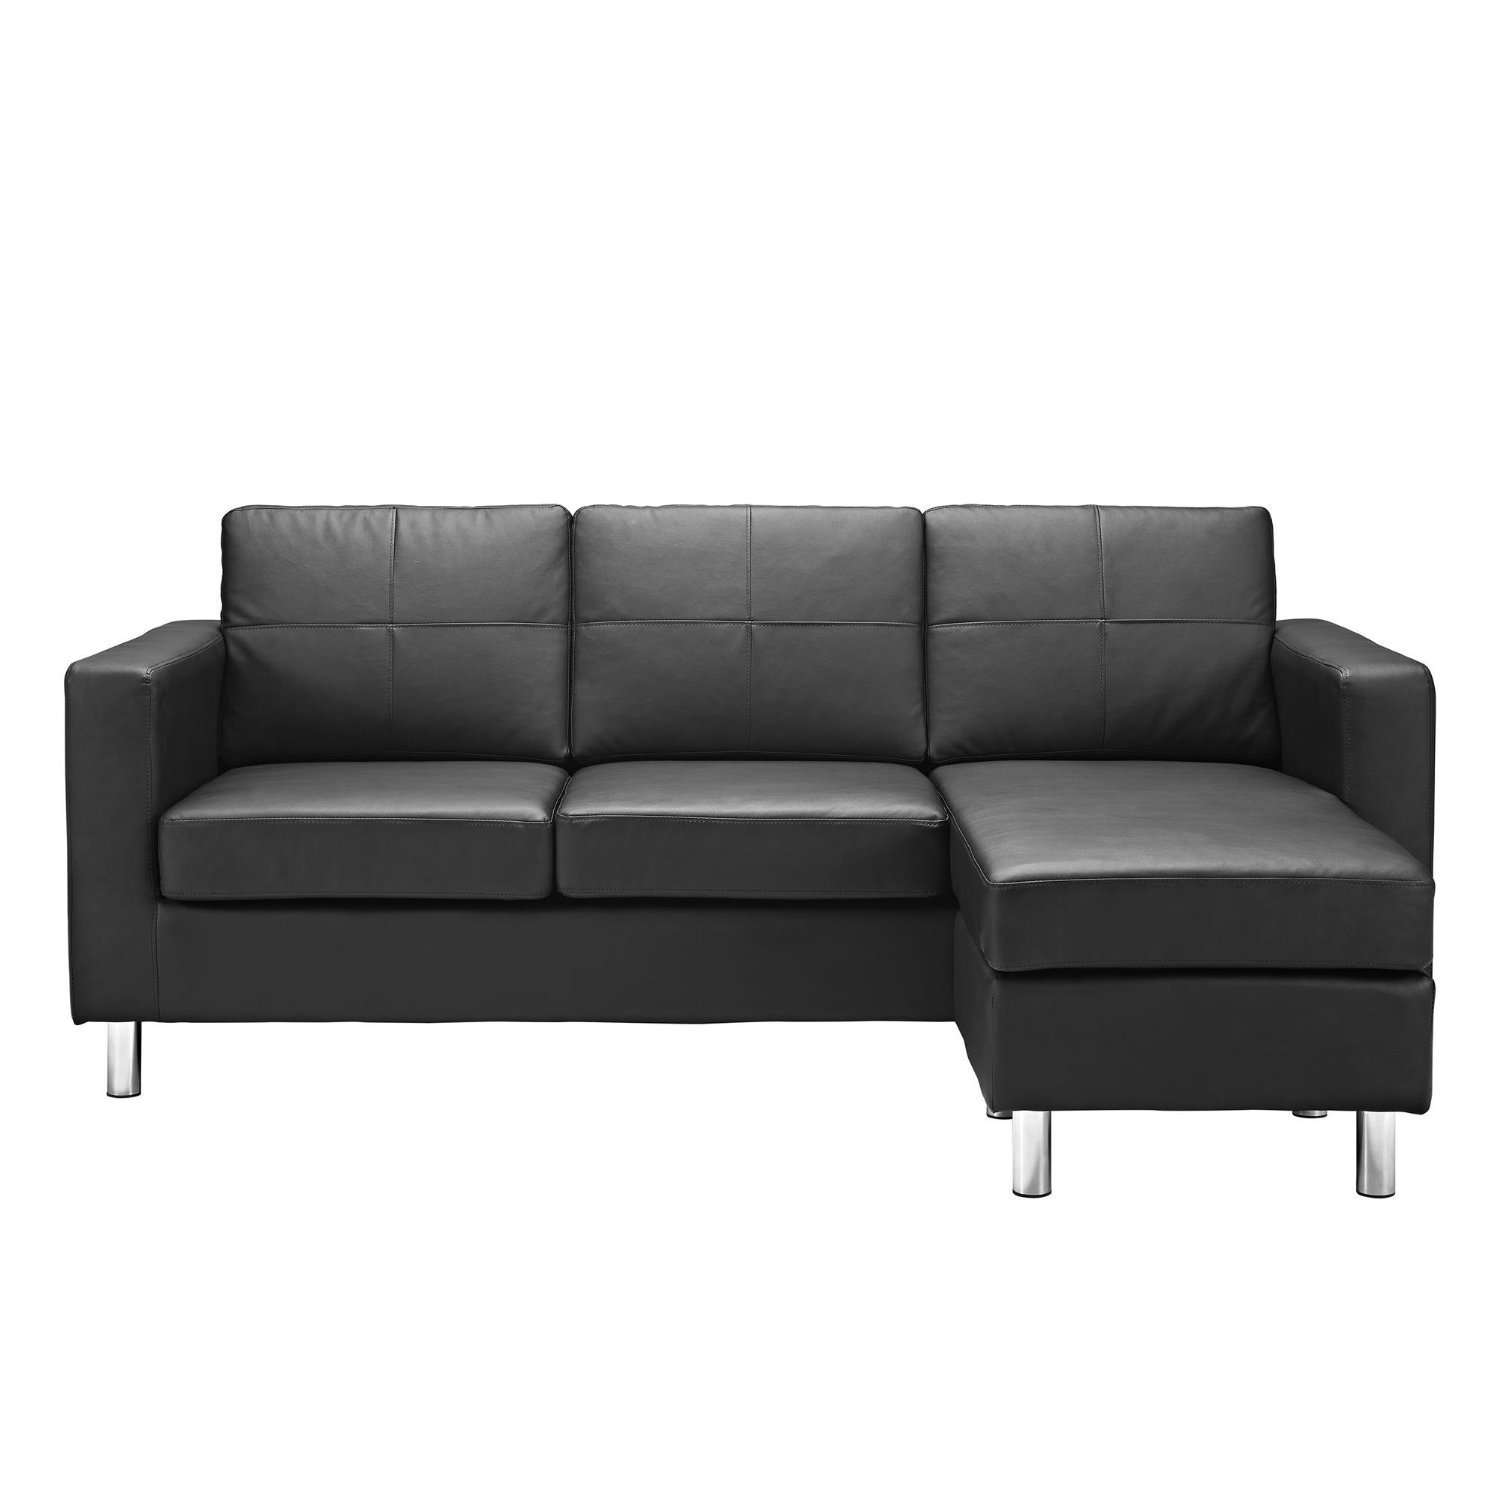 Modern Bonded Leather Sectional Sofa - Small Space Configurable Couch -  Black | LAVORIST